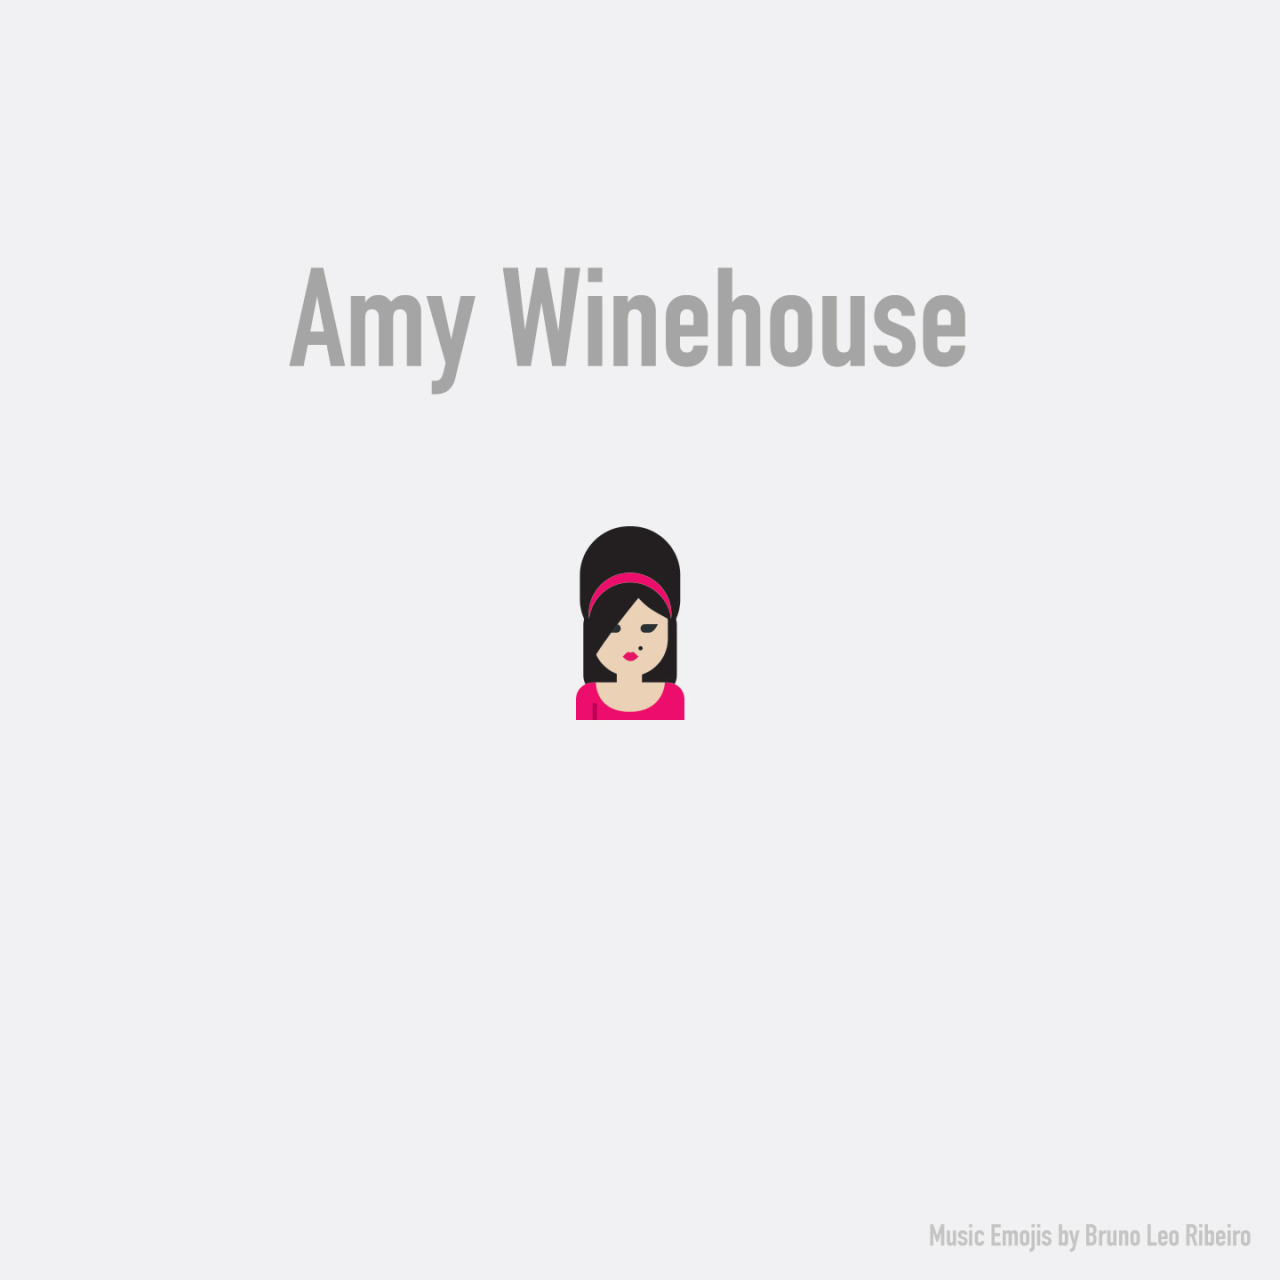 Amy Winehouse emoji